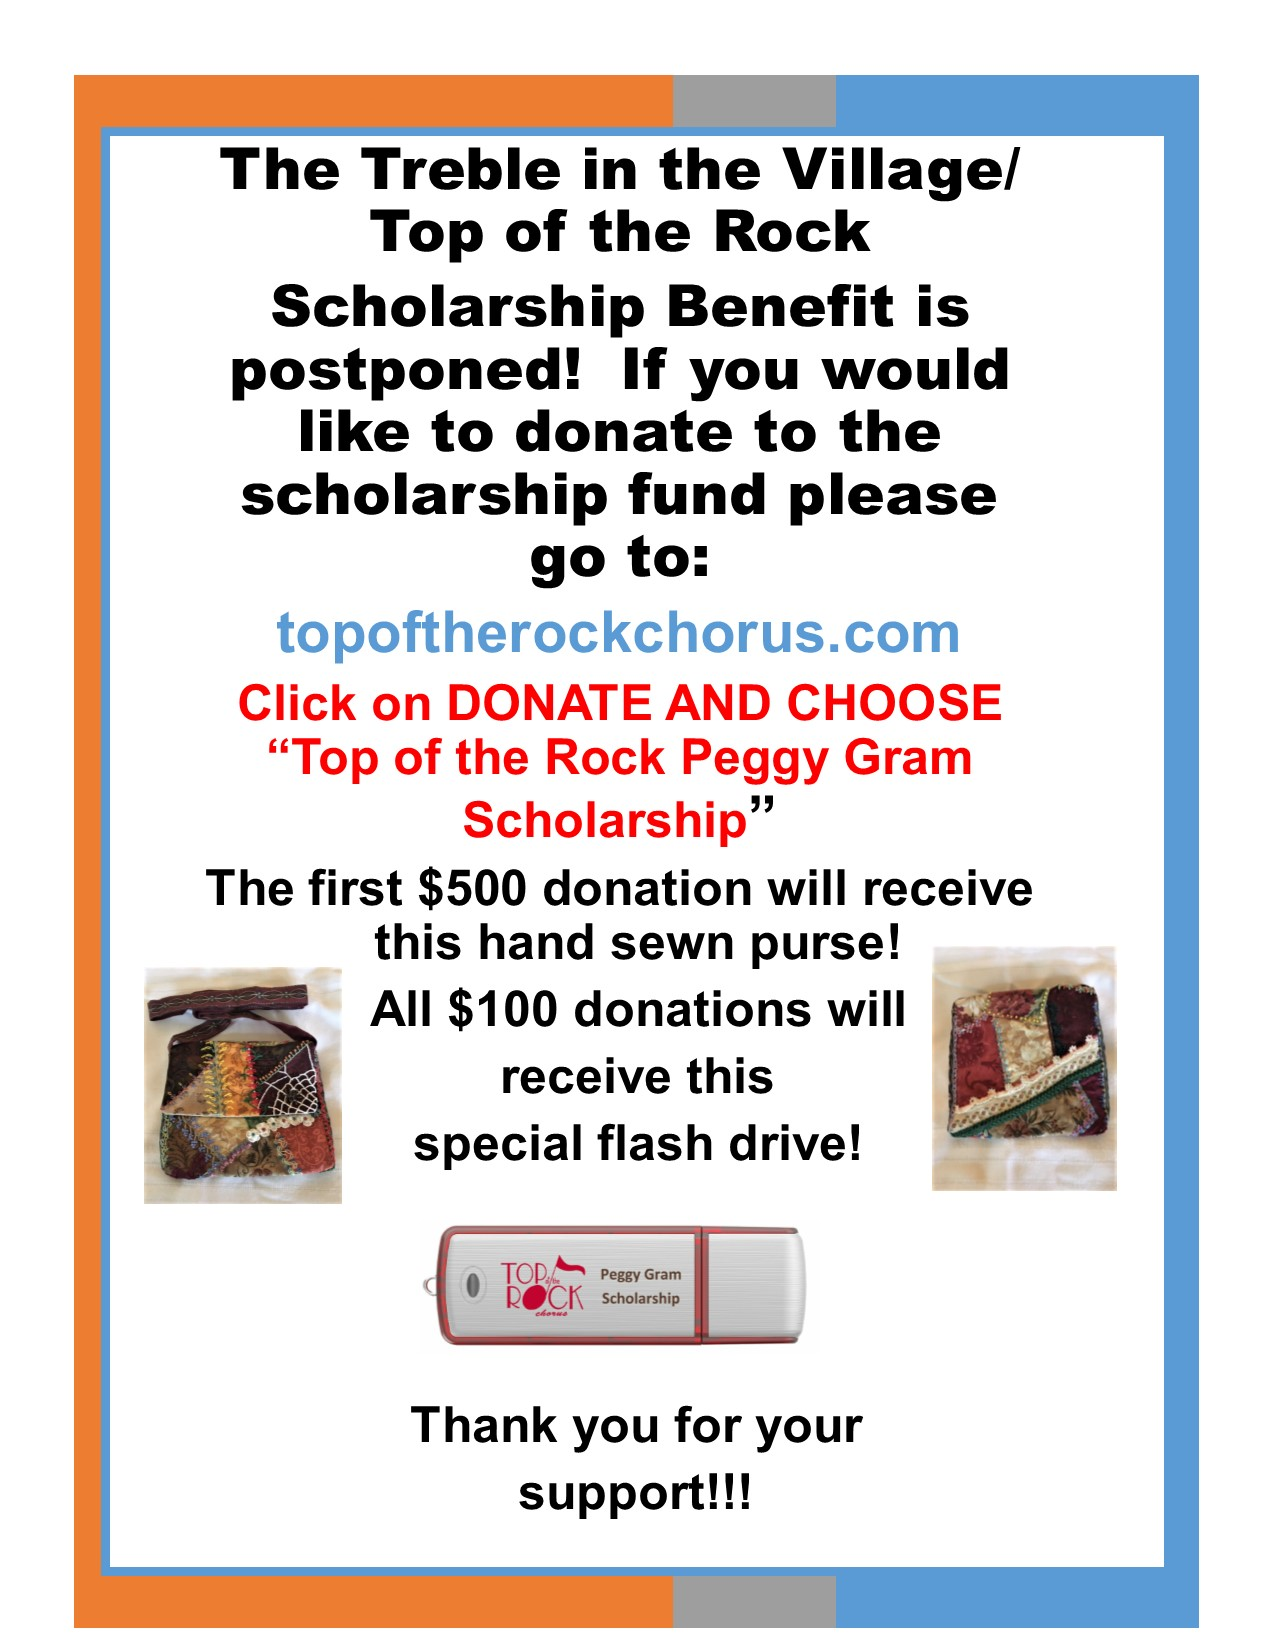 Support TOTR Peggy Gram Scholarship